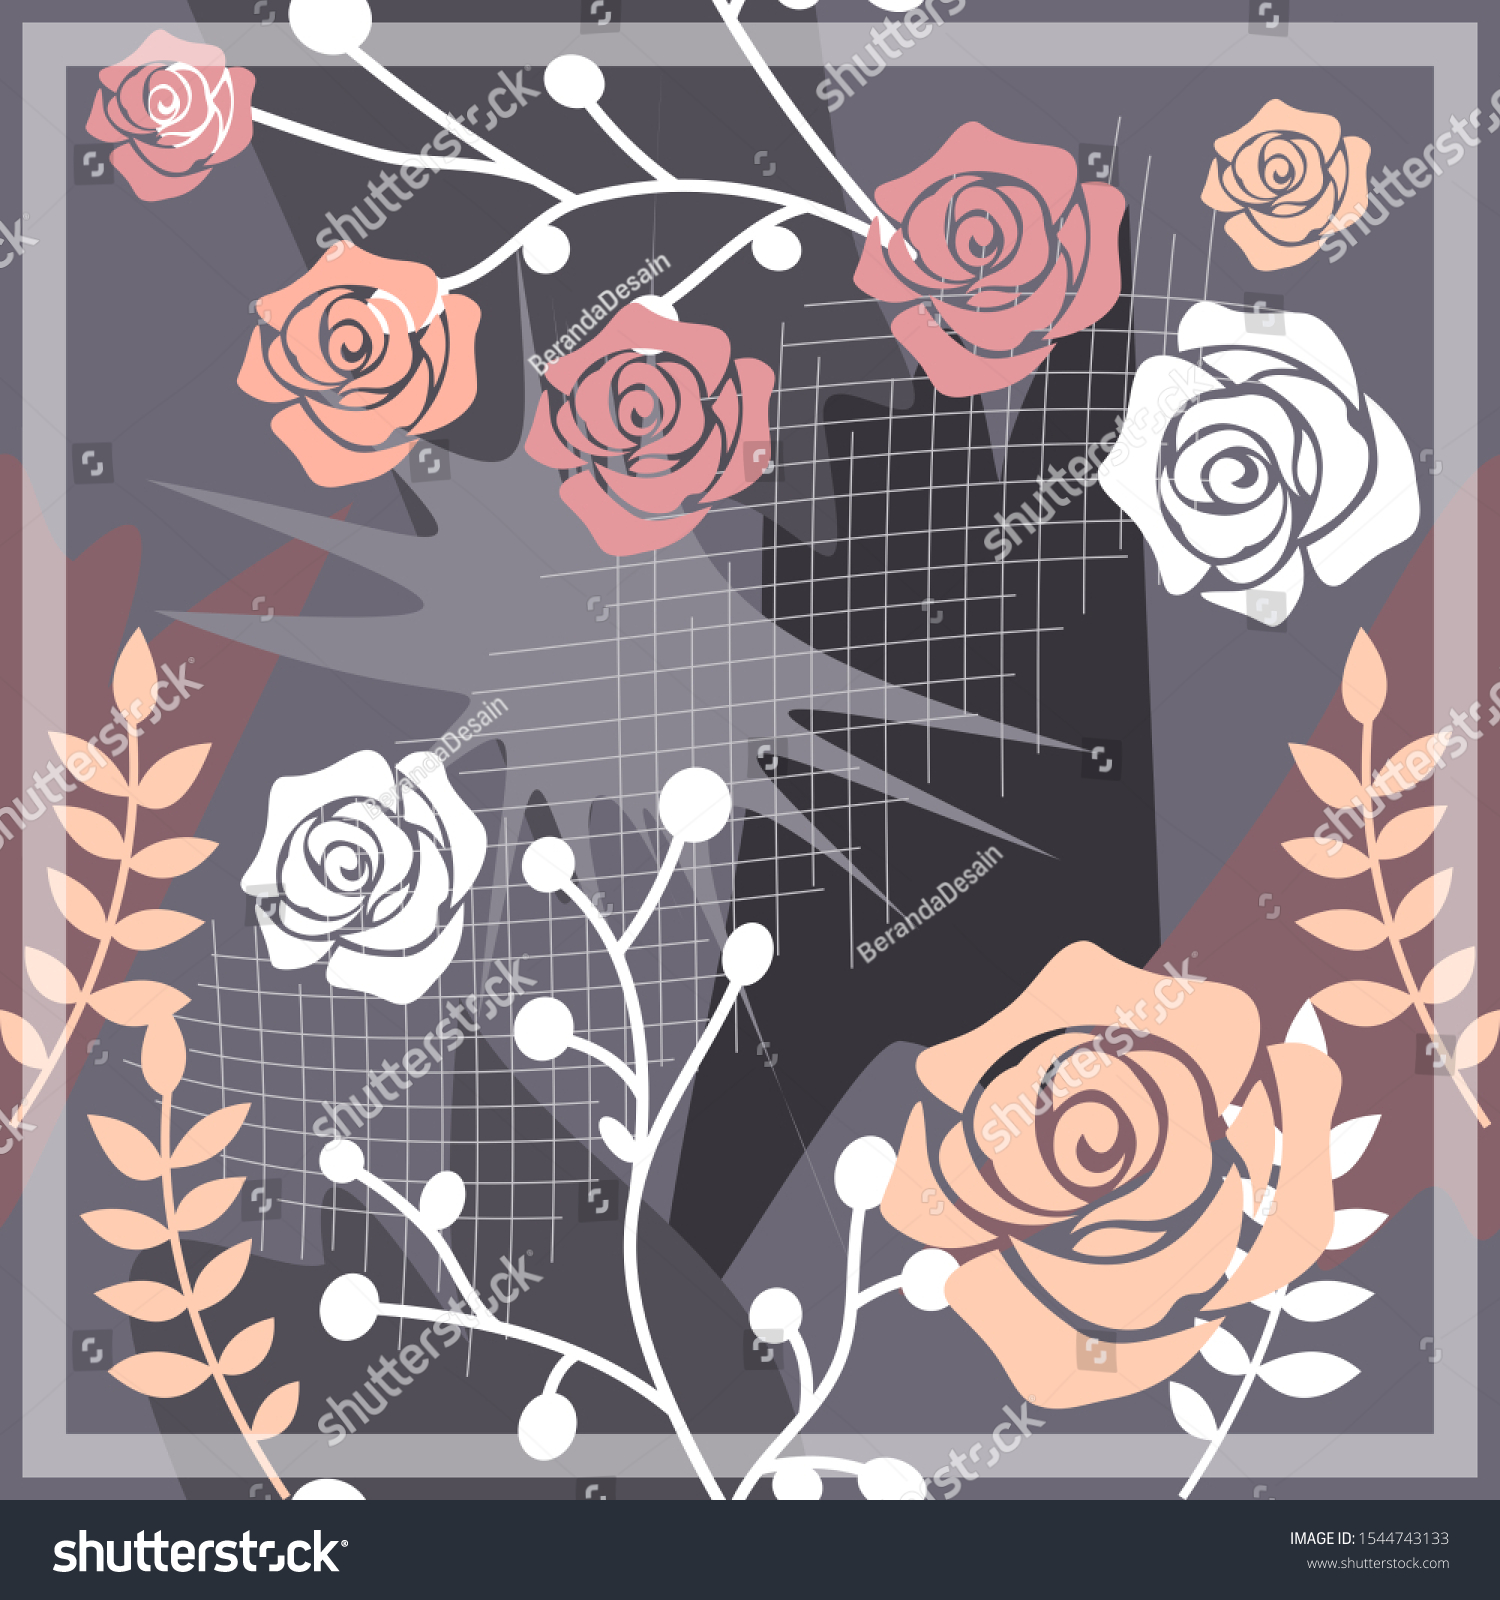 Hijab Design Floral Abstract Style Silk Stock Vector (Royalty Free